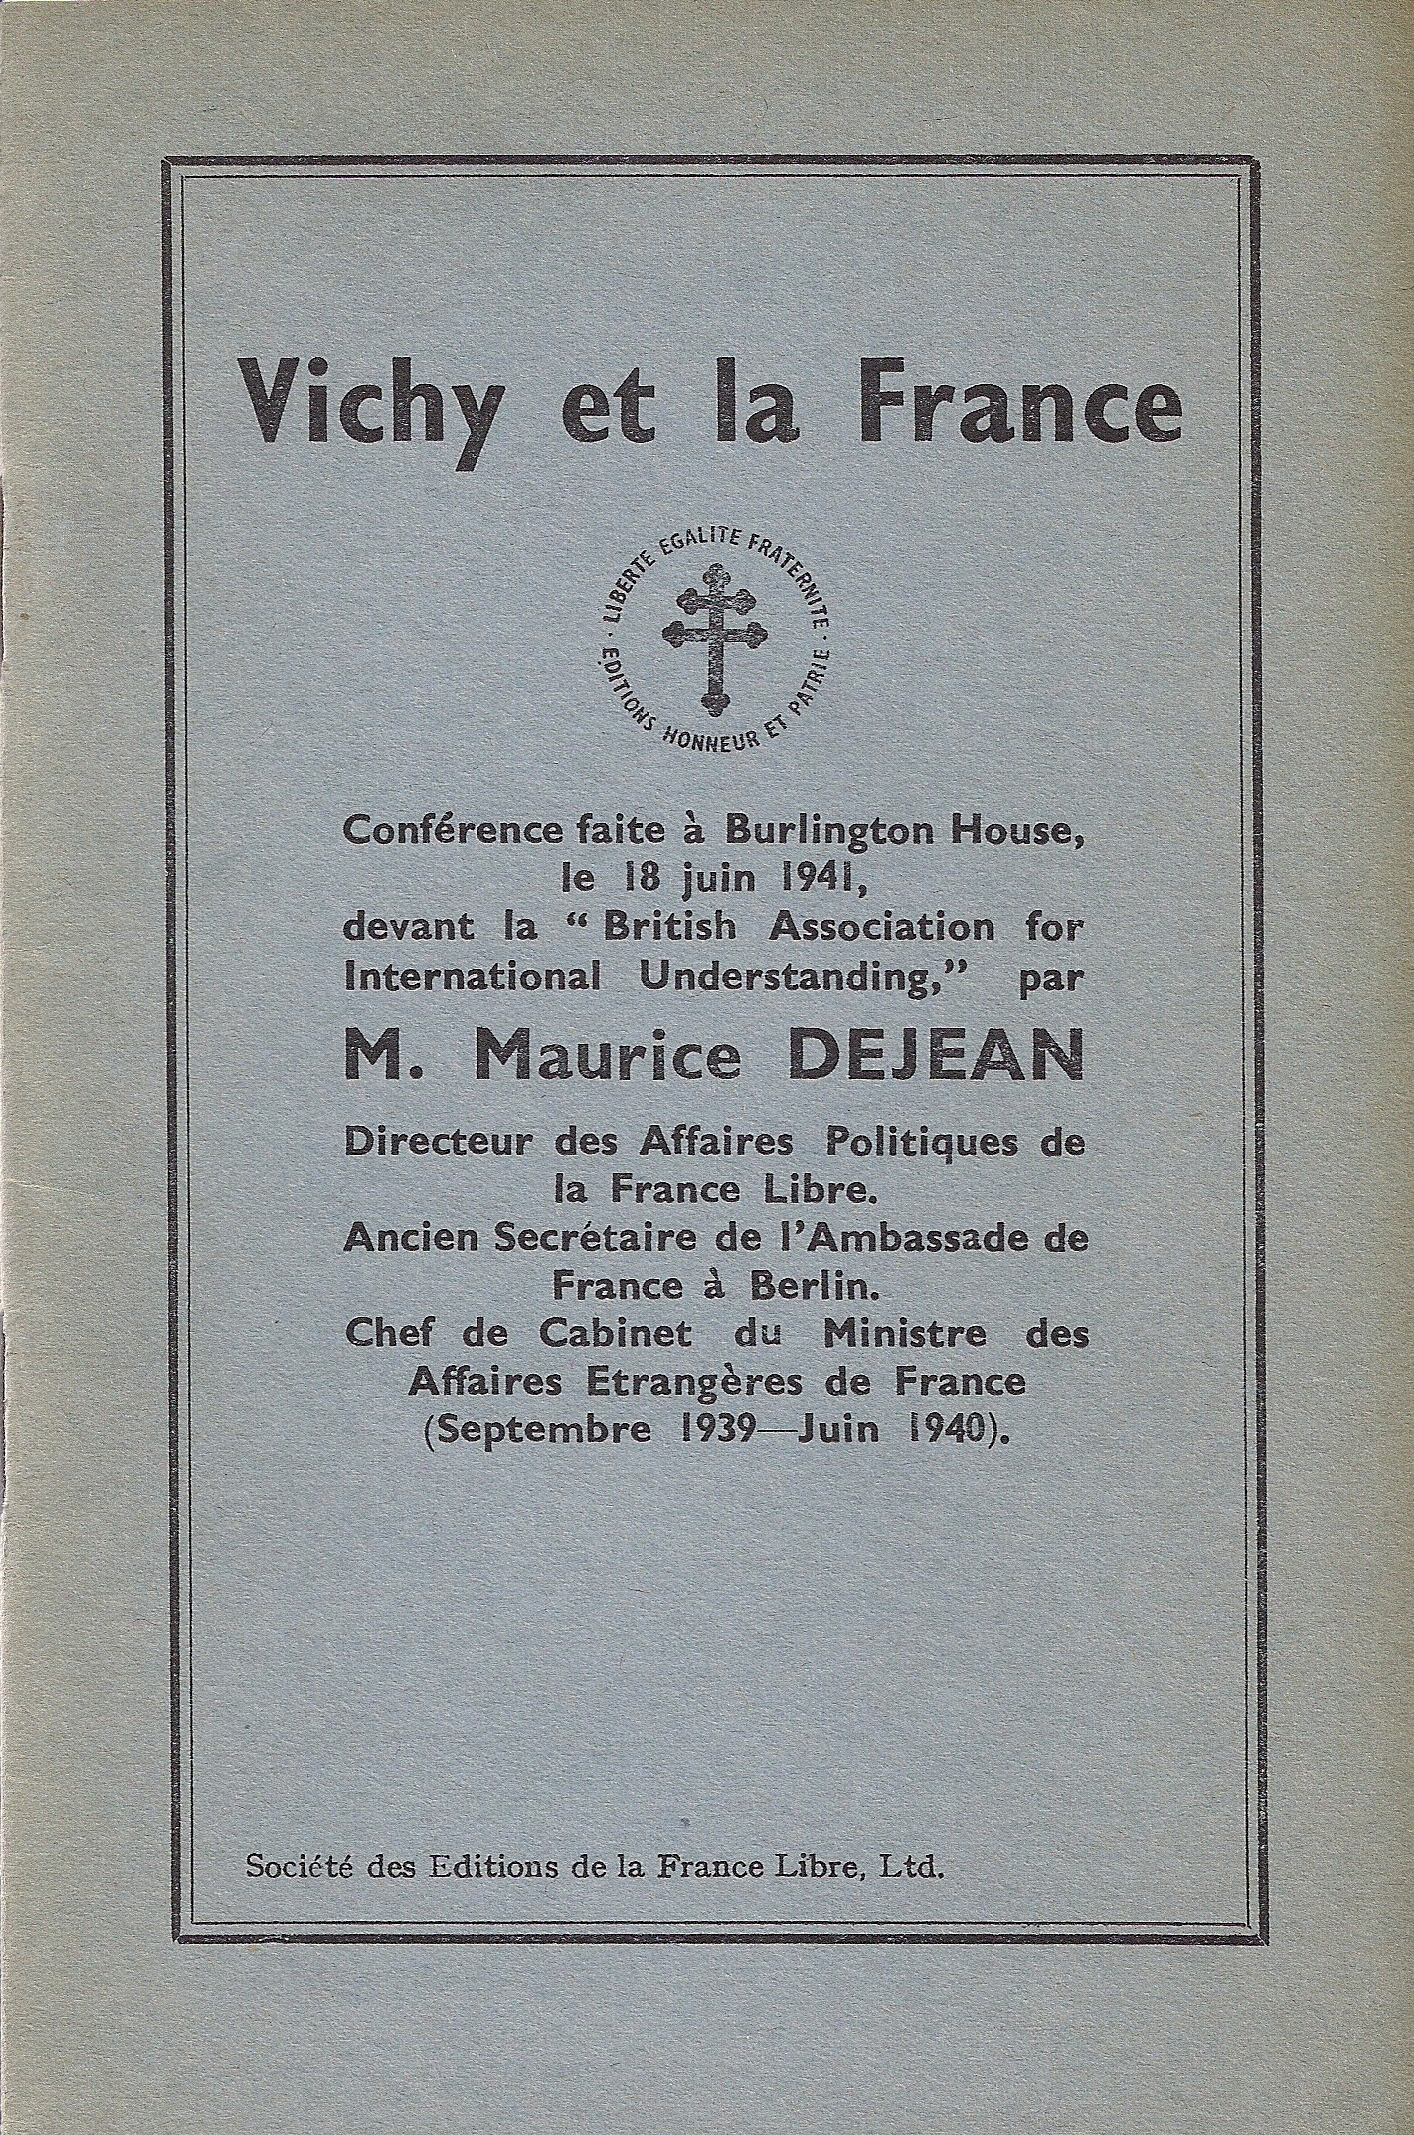 Vichy et la France